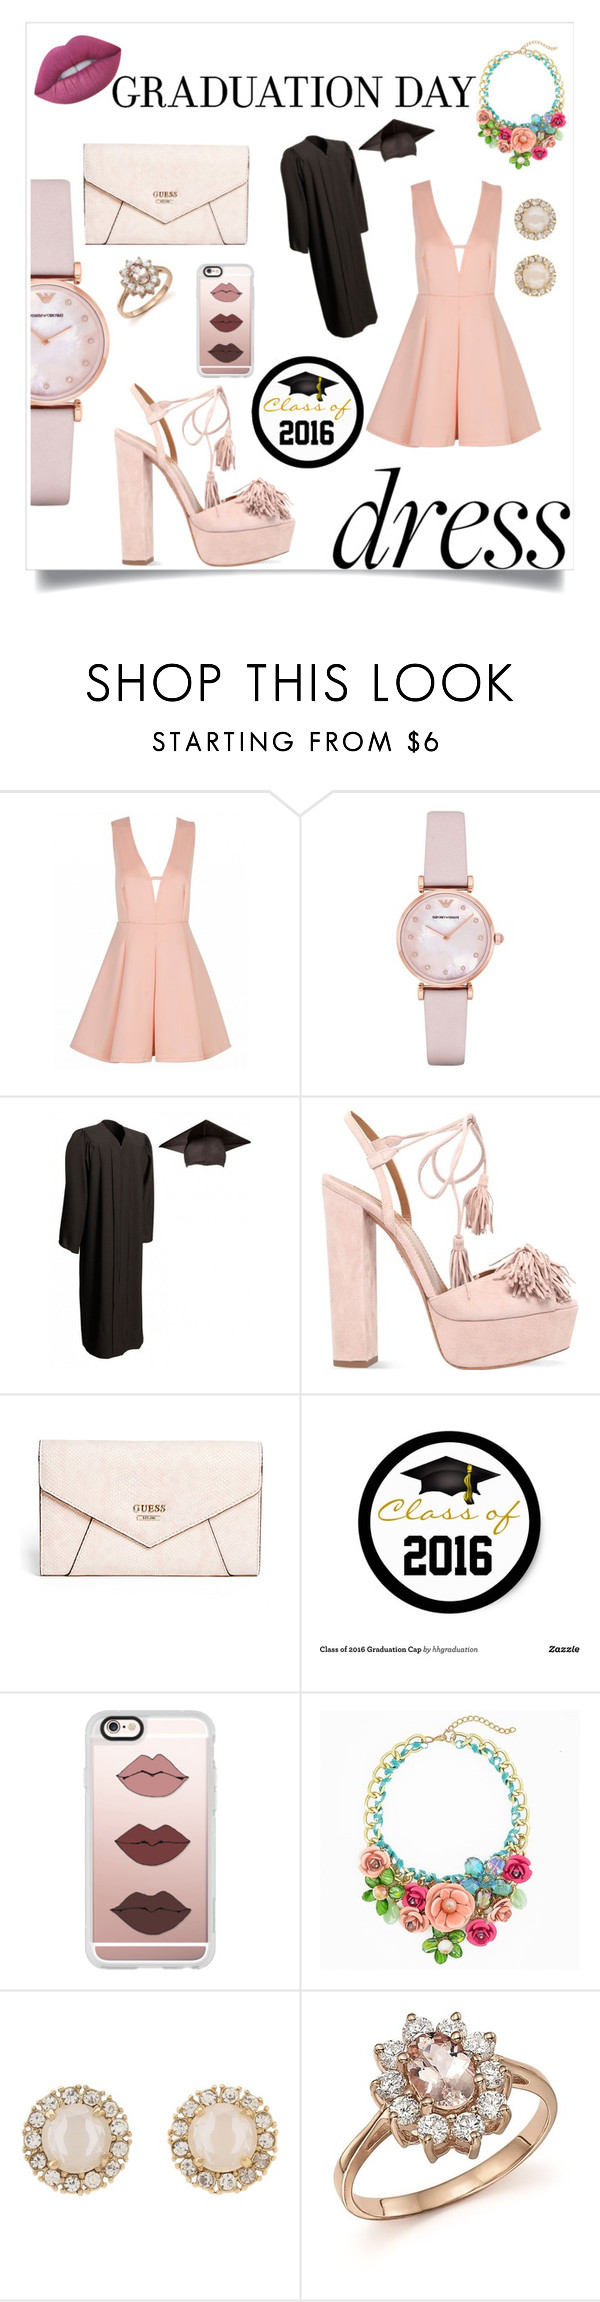 """The best day with the best colors"" by julietarequena on Polyvore featuring Emporio Armani, Aquazzura, GUESS, Casetify, Kate Spade, Bloomingdale's, Lime Crime and graduationdaydress"